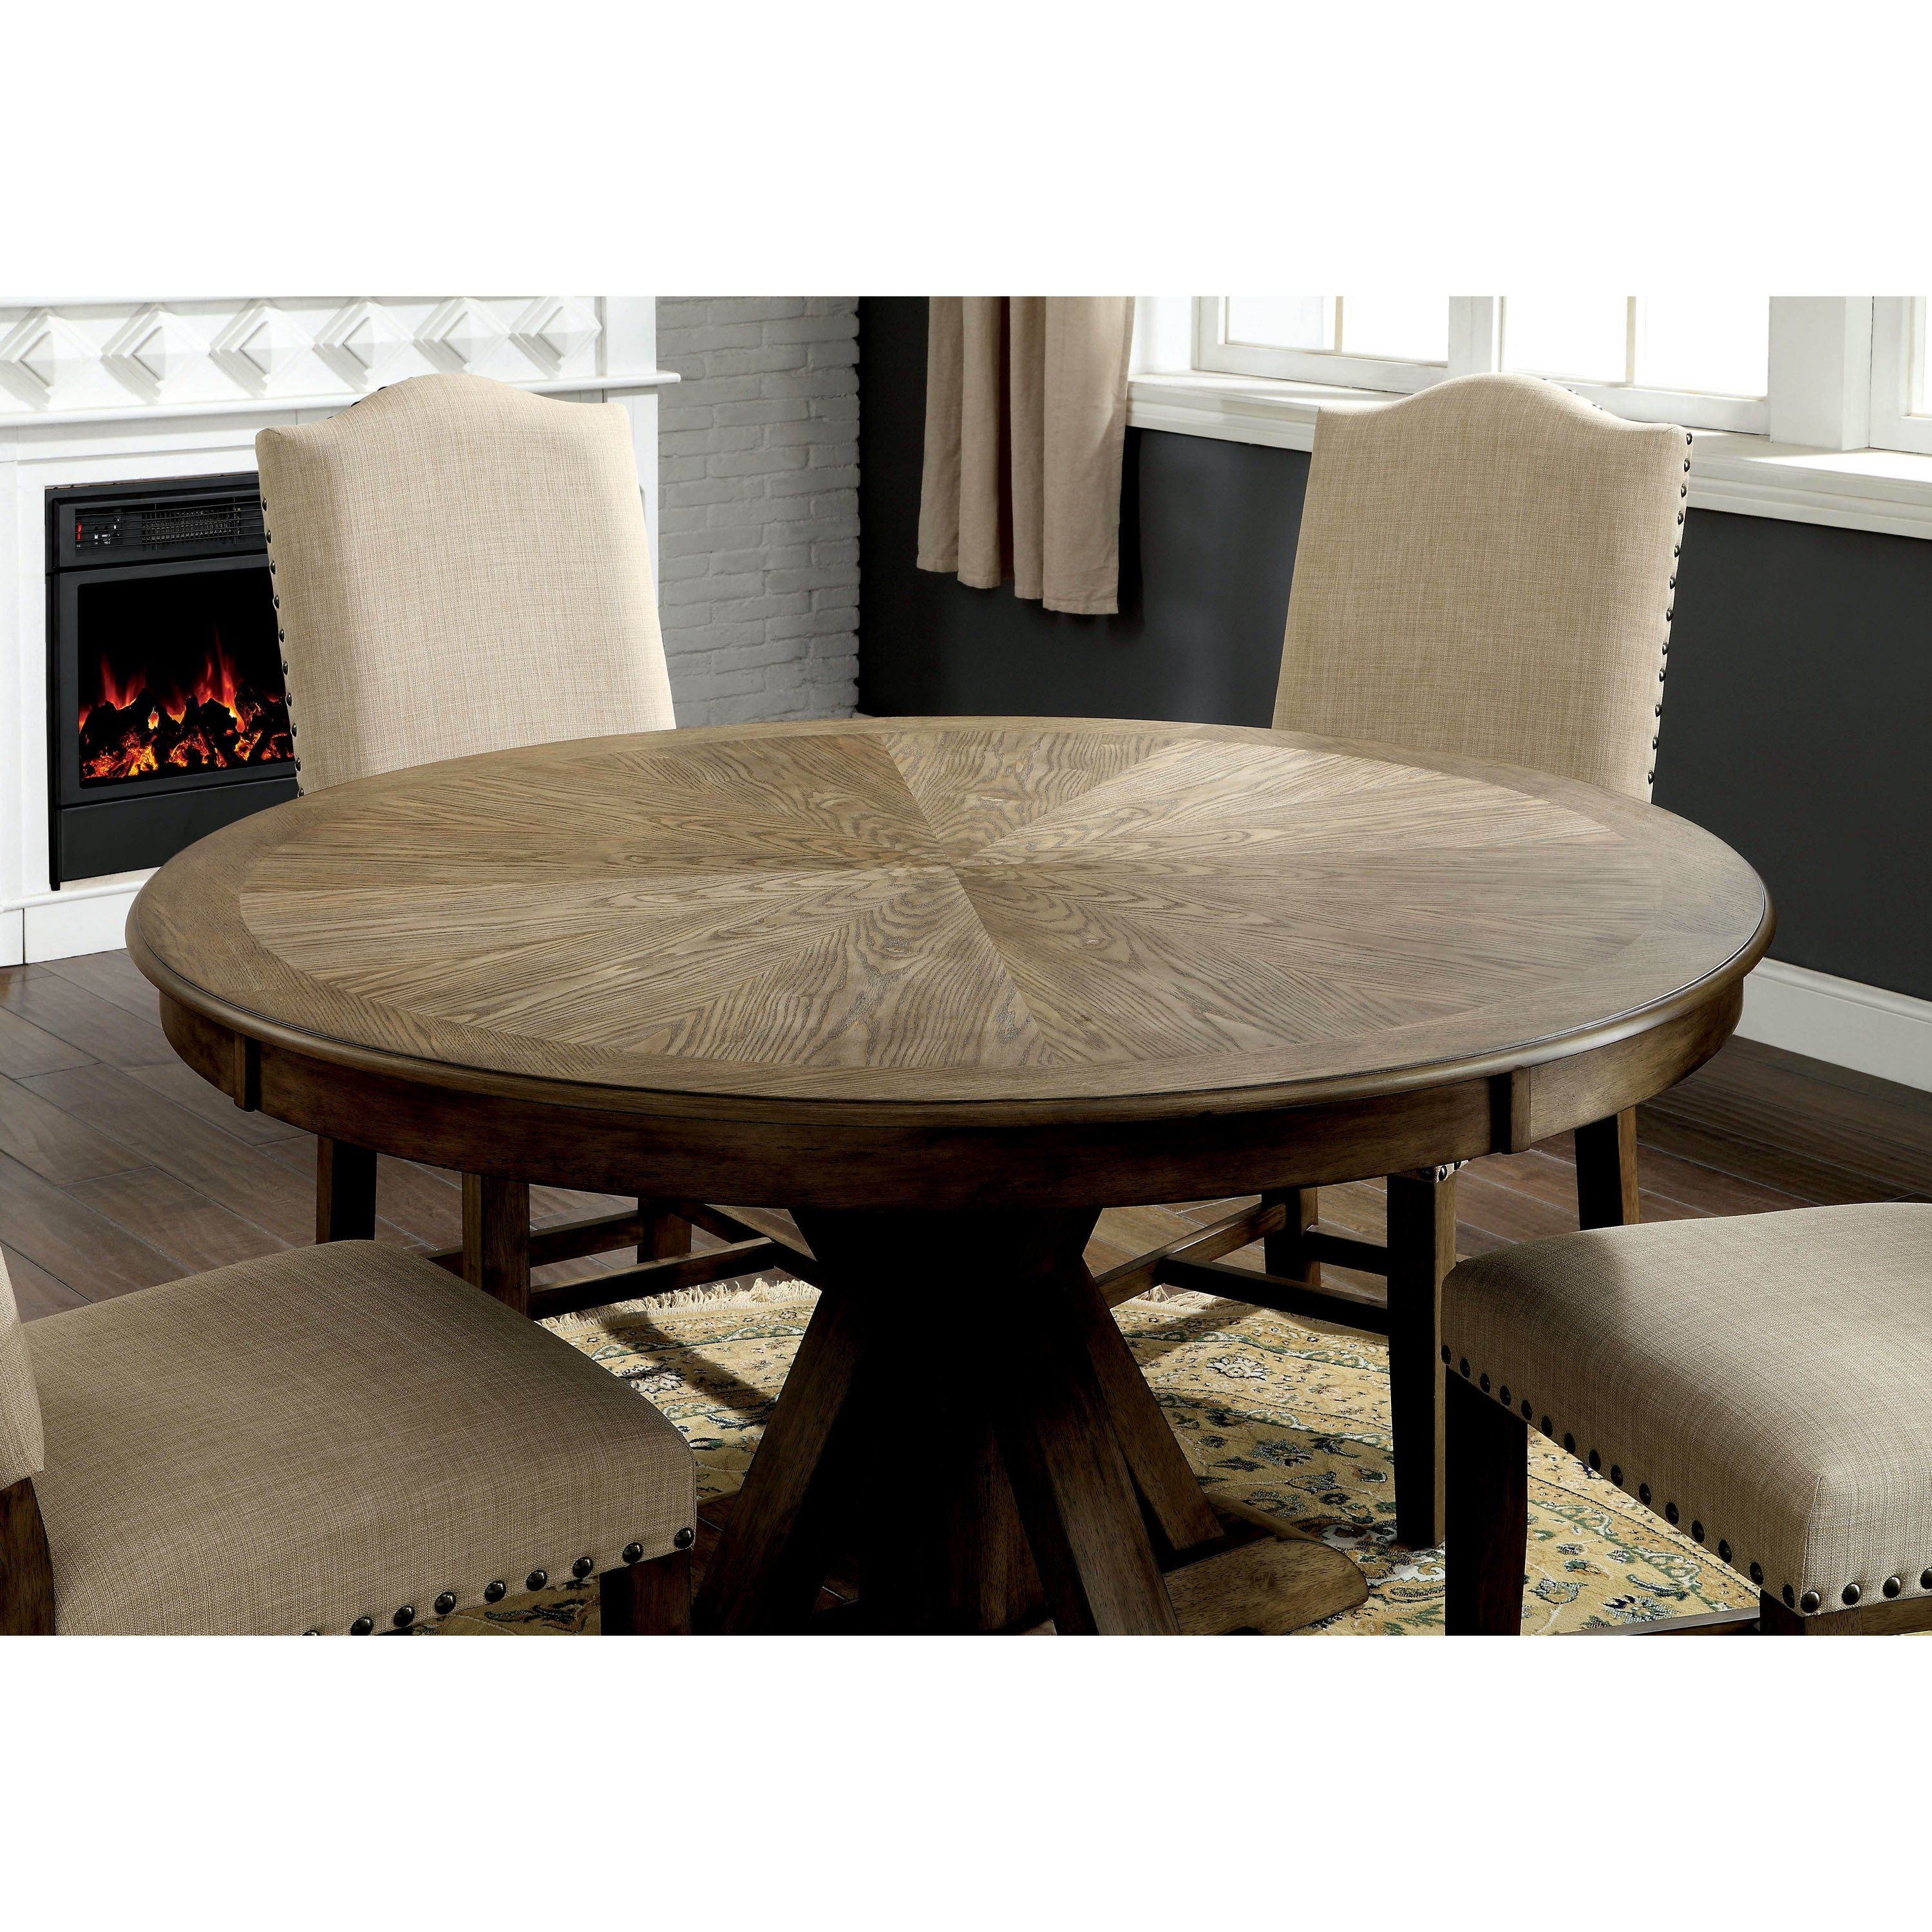 Shop Furniture Of America Cooper Rustic Light Oak Round 54 Inch Pedestal Dining  Table   On Sale   Free Shipping Today   Overstock   19826047